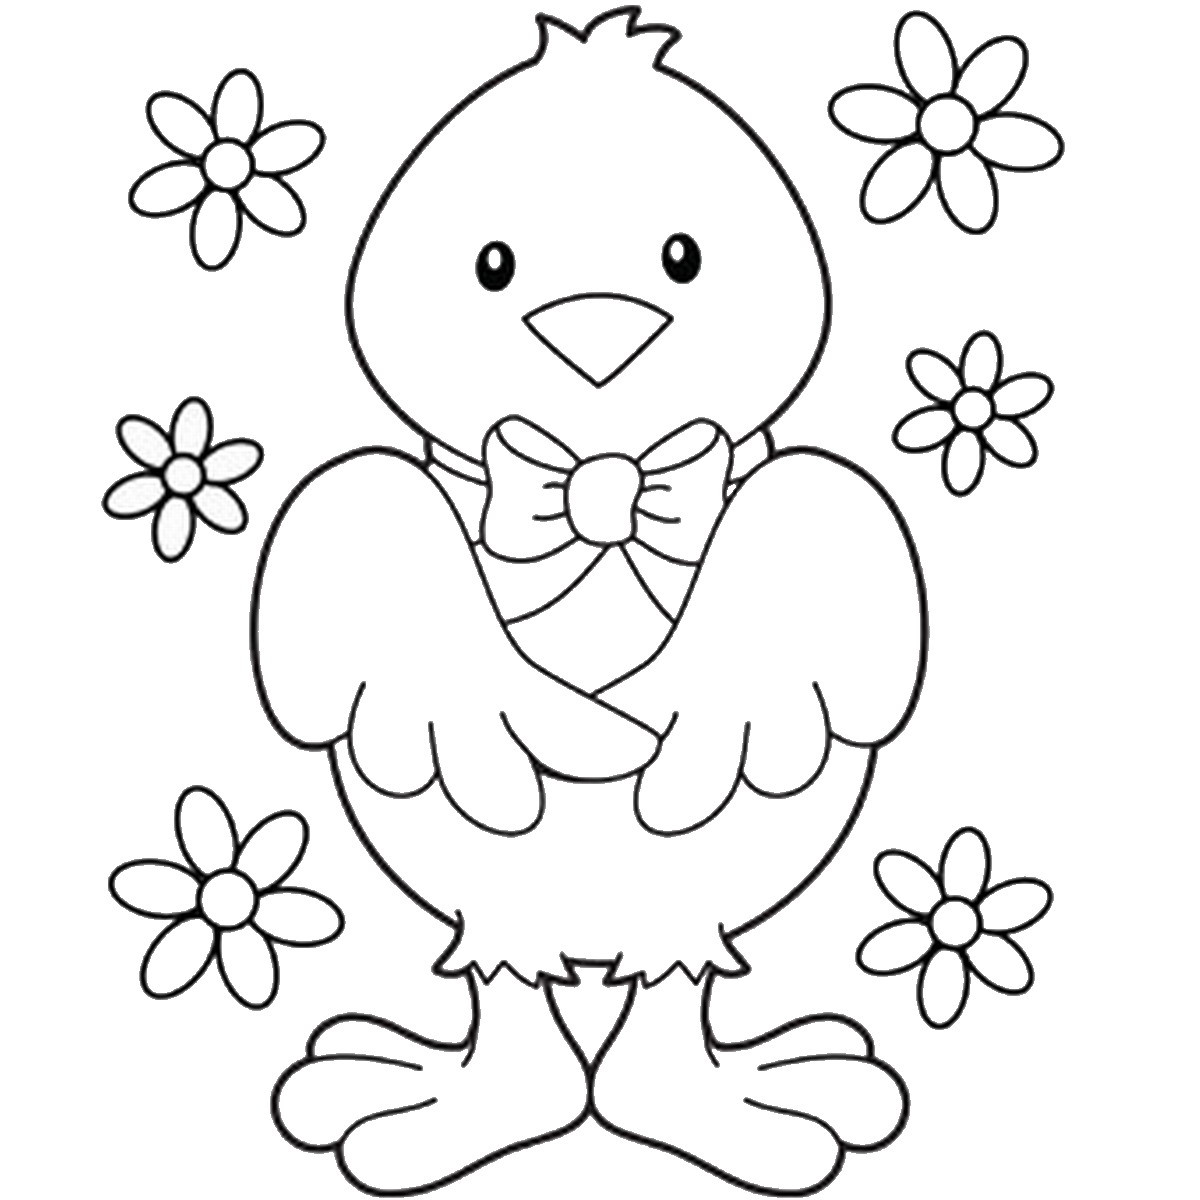 Best ideas about Easter Coloring Sheets For Kids . Save or Pin Easter Coloring Pages Now.